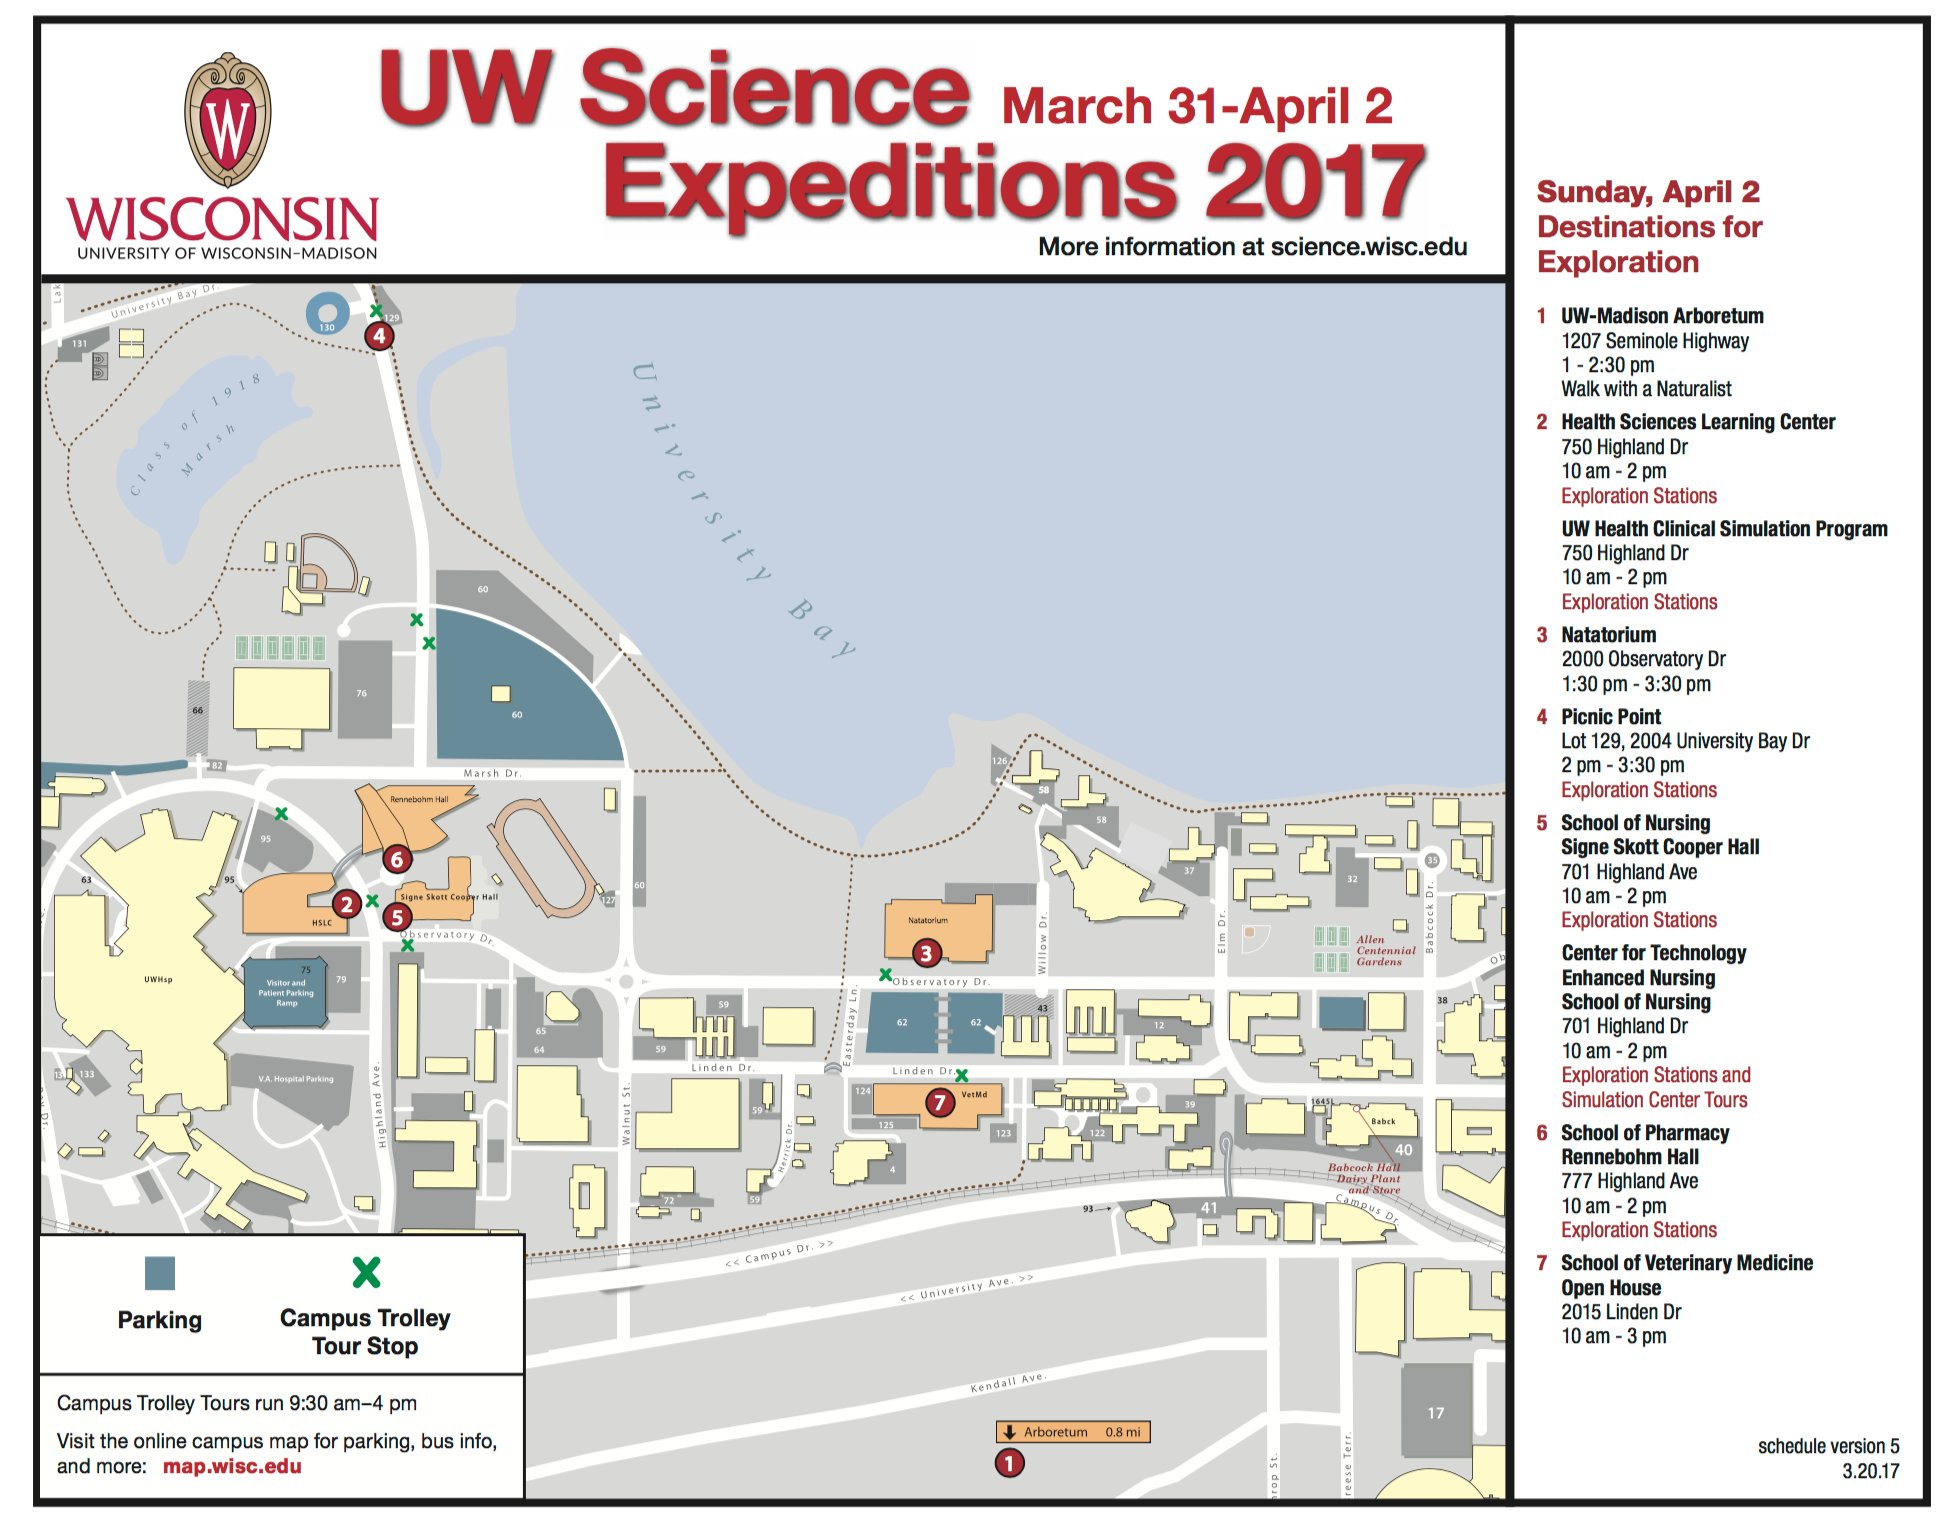 sciencewiscedu on twitter timetable map for sunday april  us madisoncampus map. midwest pcb registrants university of wisconsin madison maplets